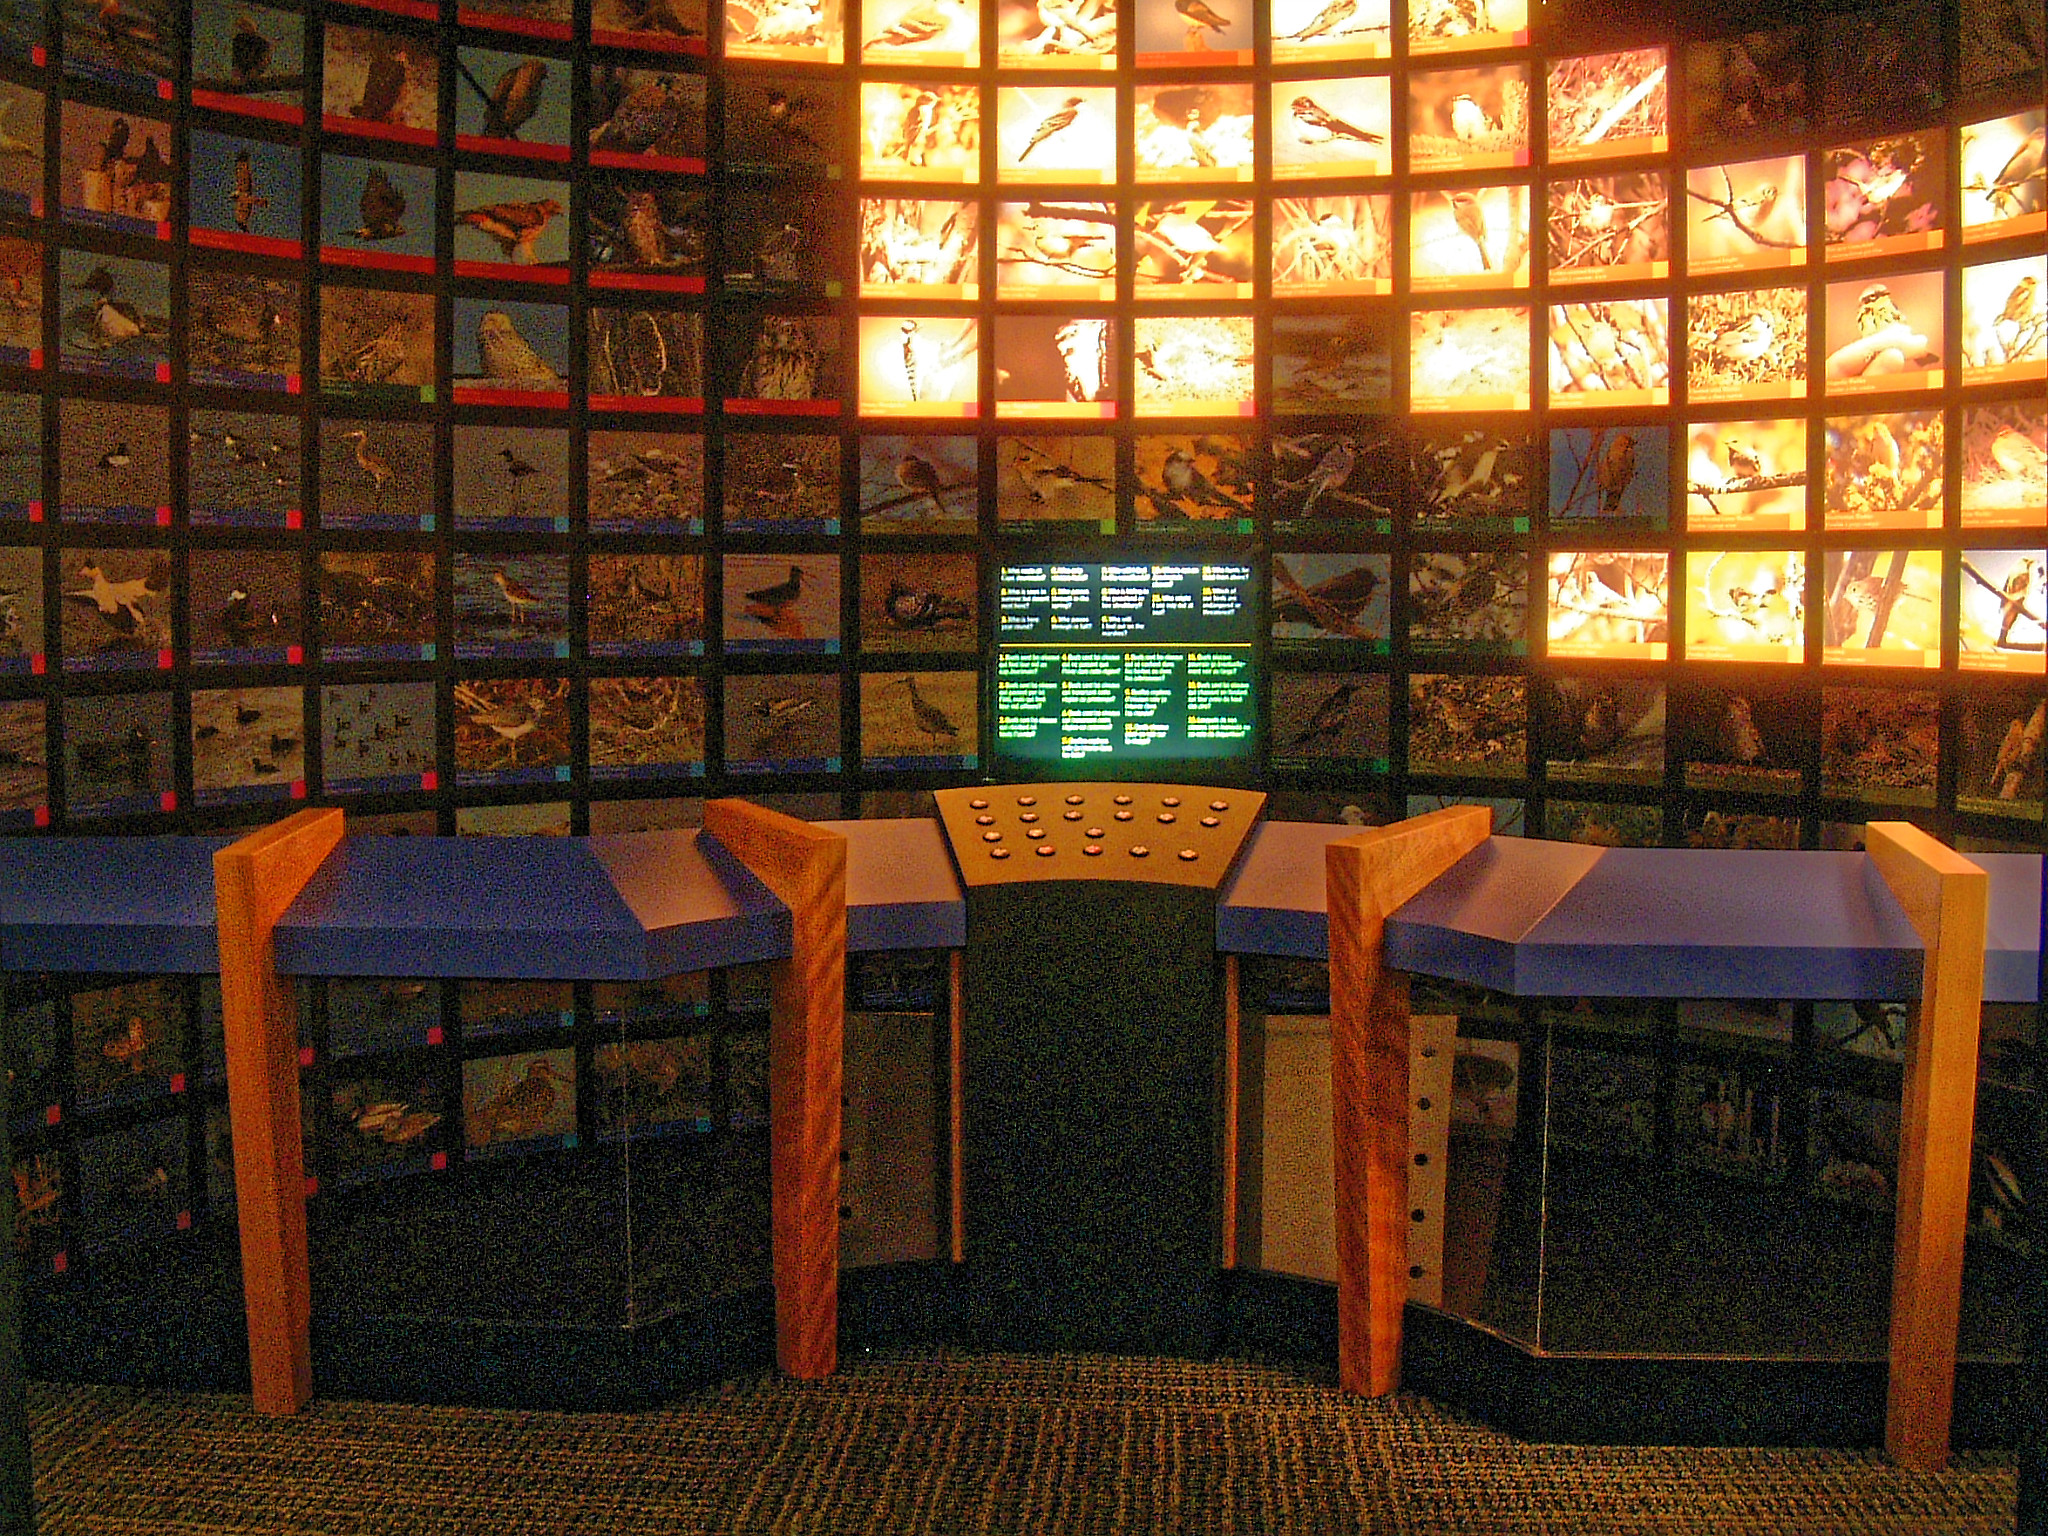 Ornithology Interactive Sorting Room